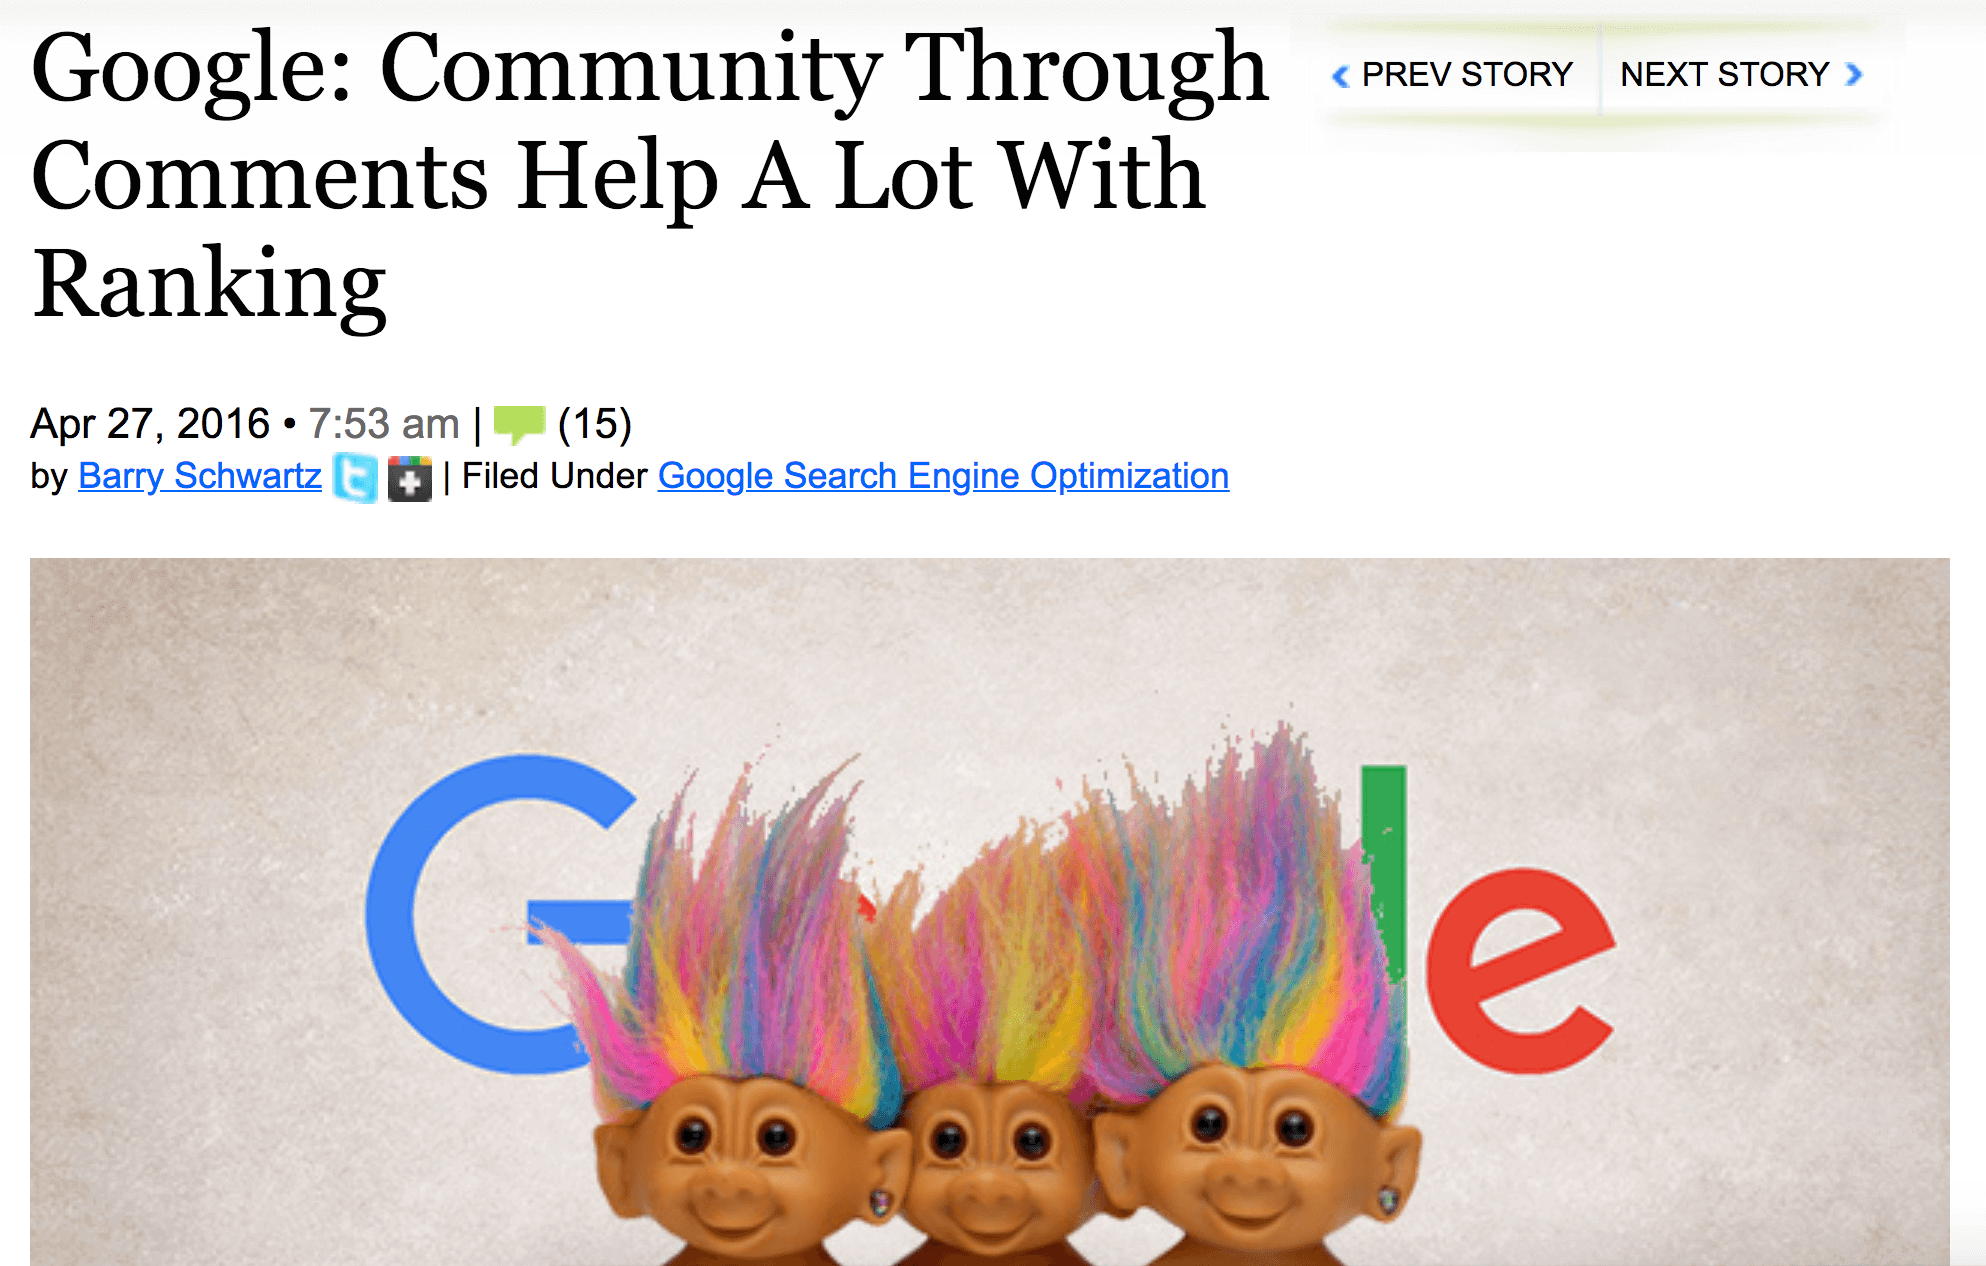 Community Through Comments Help A Lot With Ranking